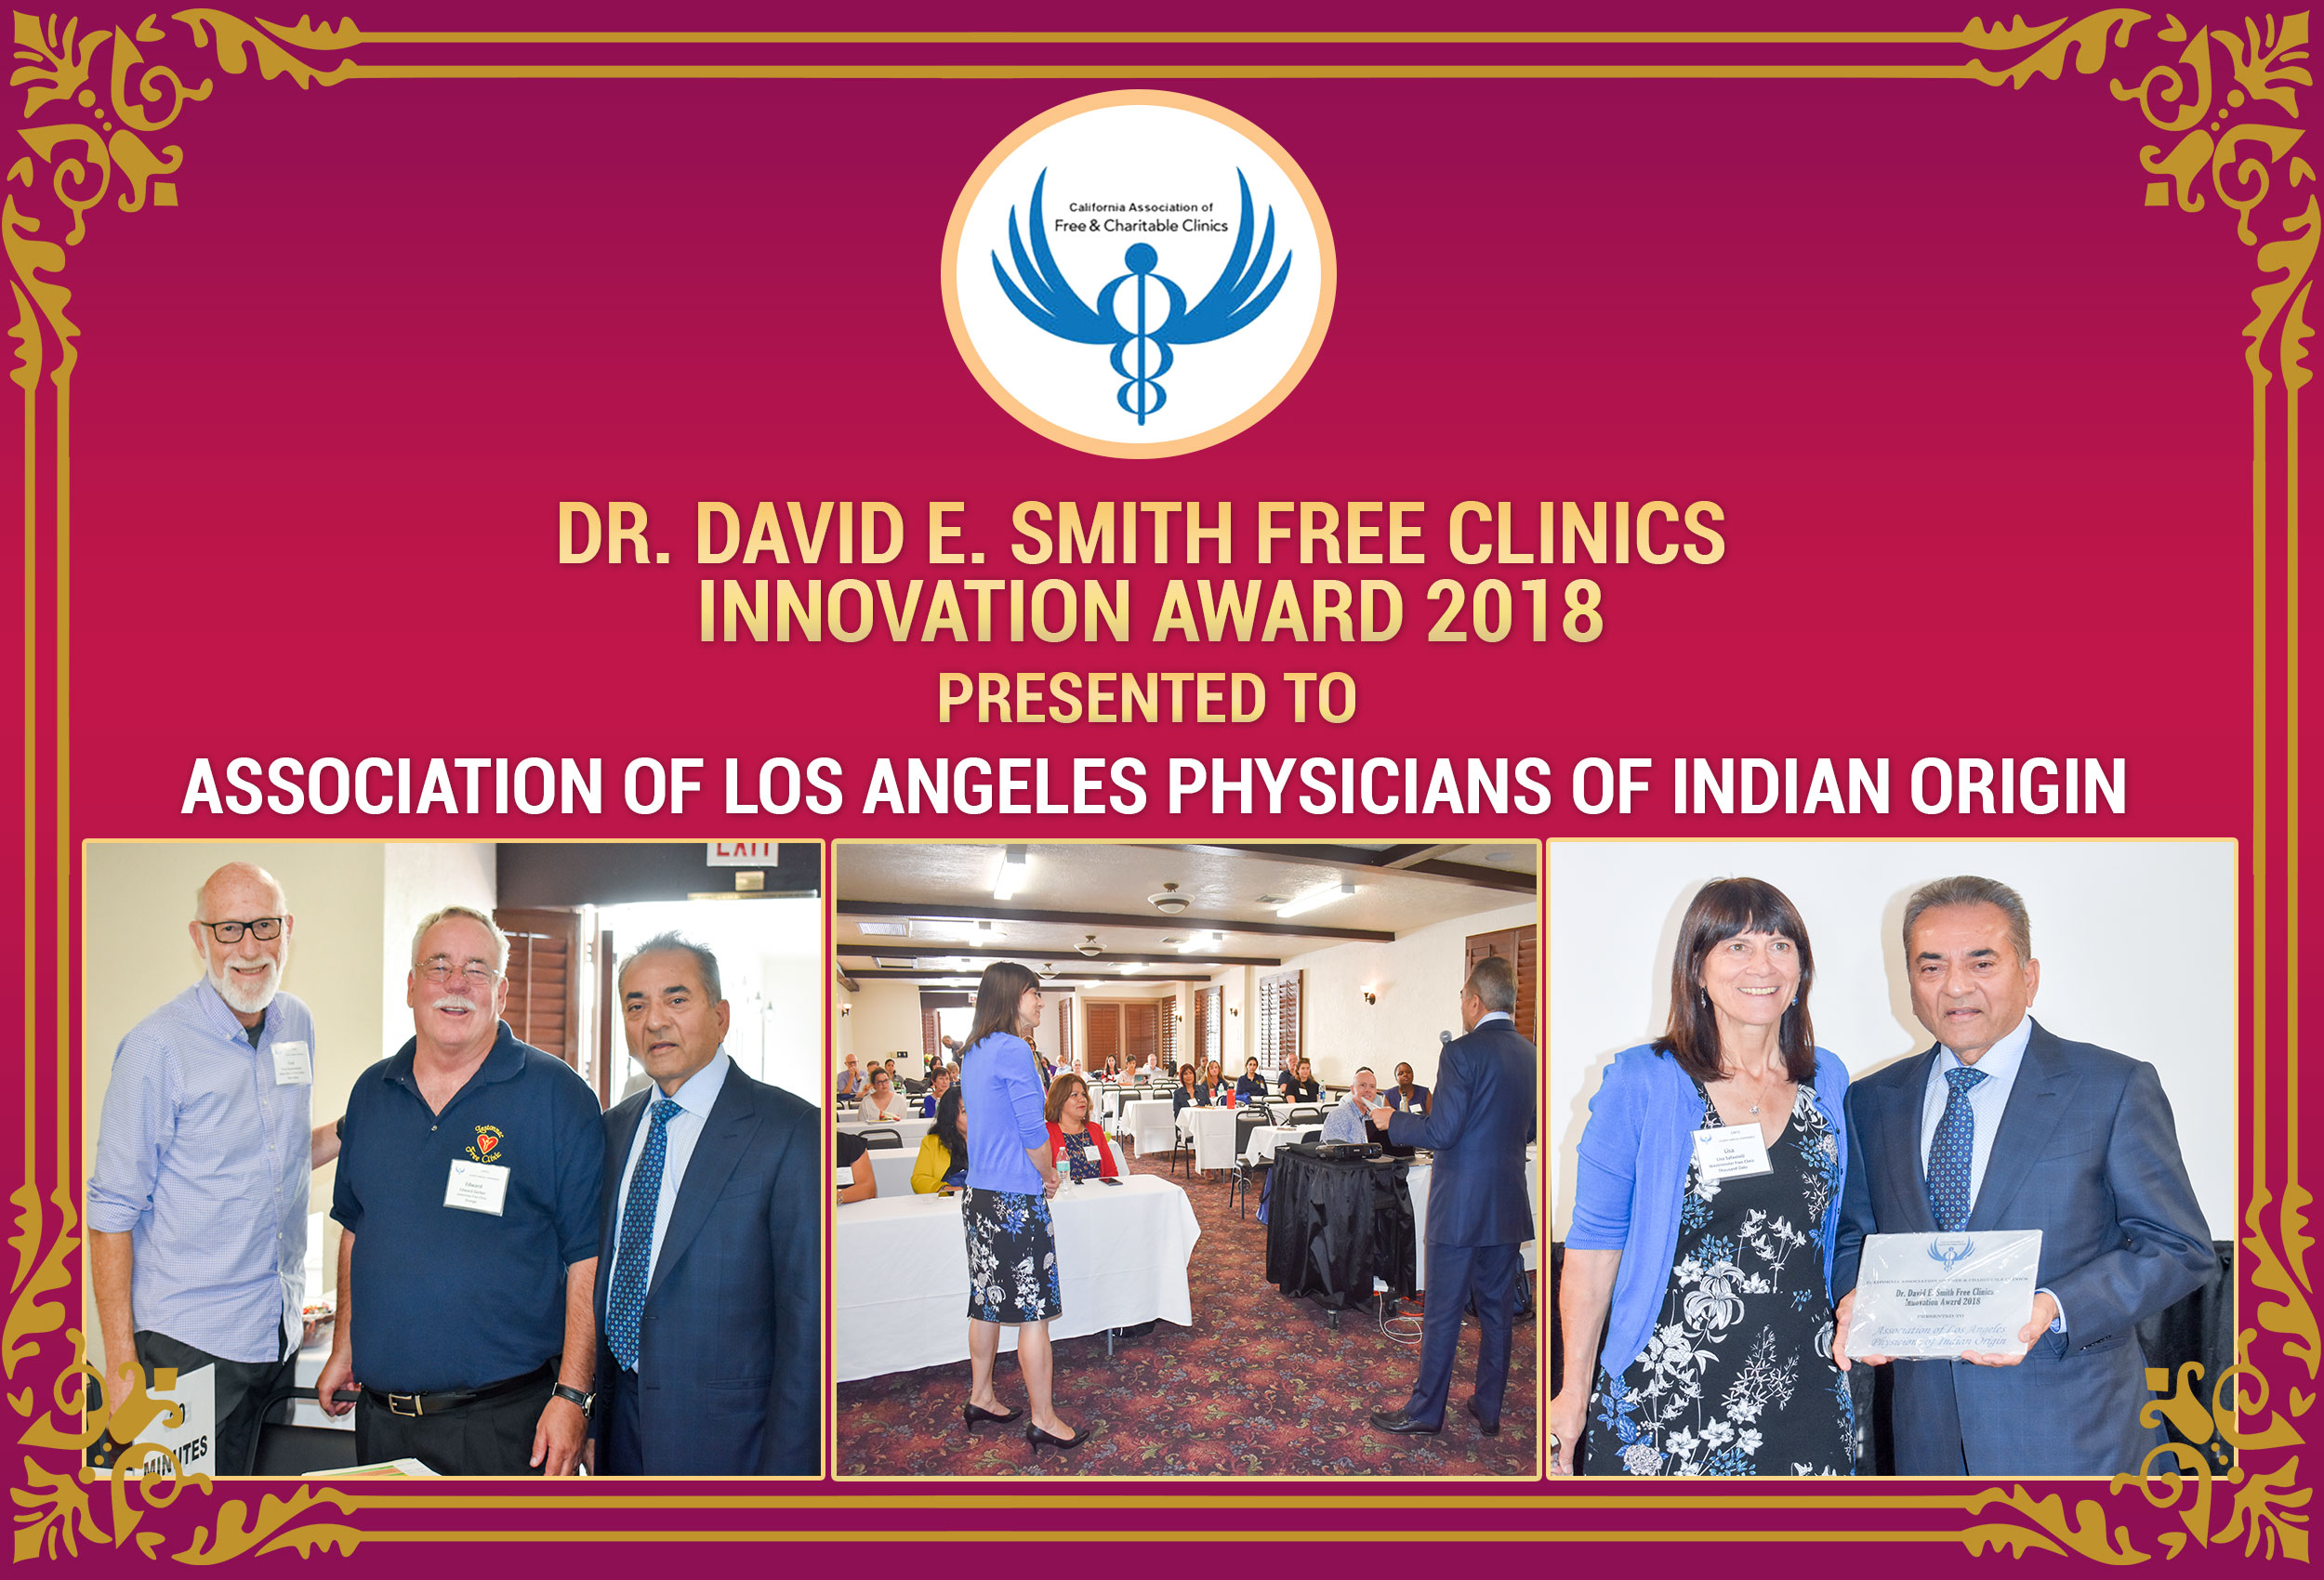 Dr. David E. Smith Free Clinics Innovation Award 2018 to ALAPIO.org